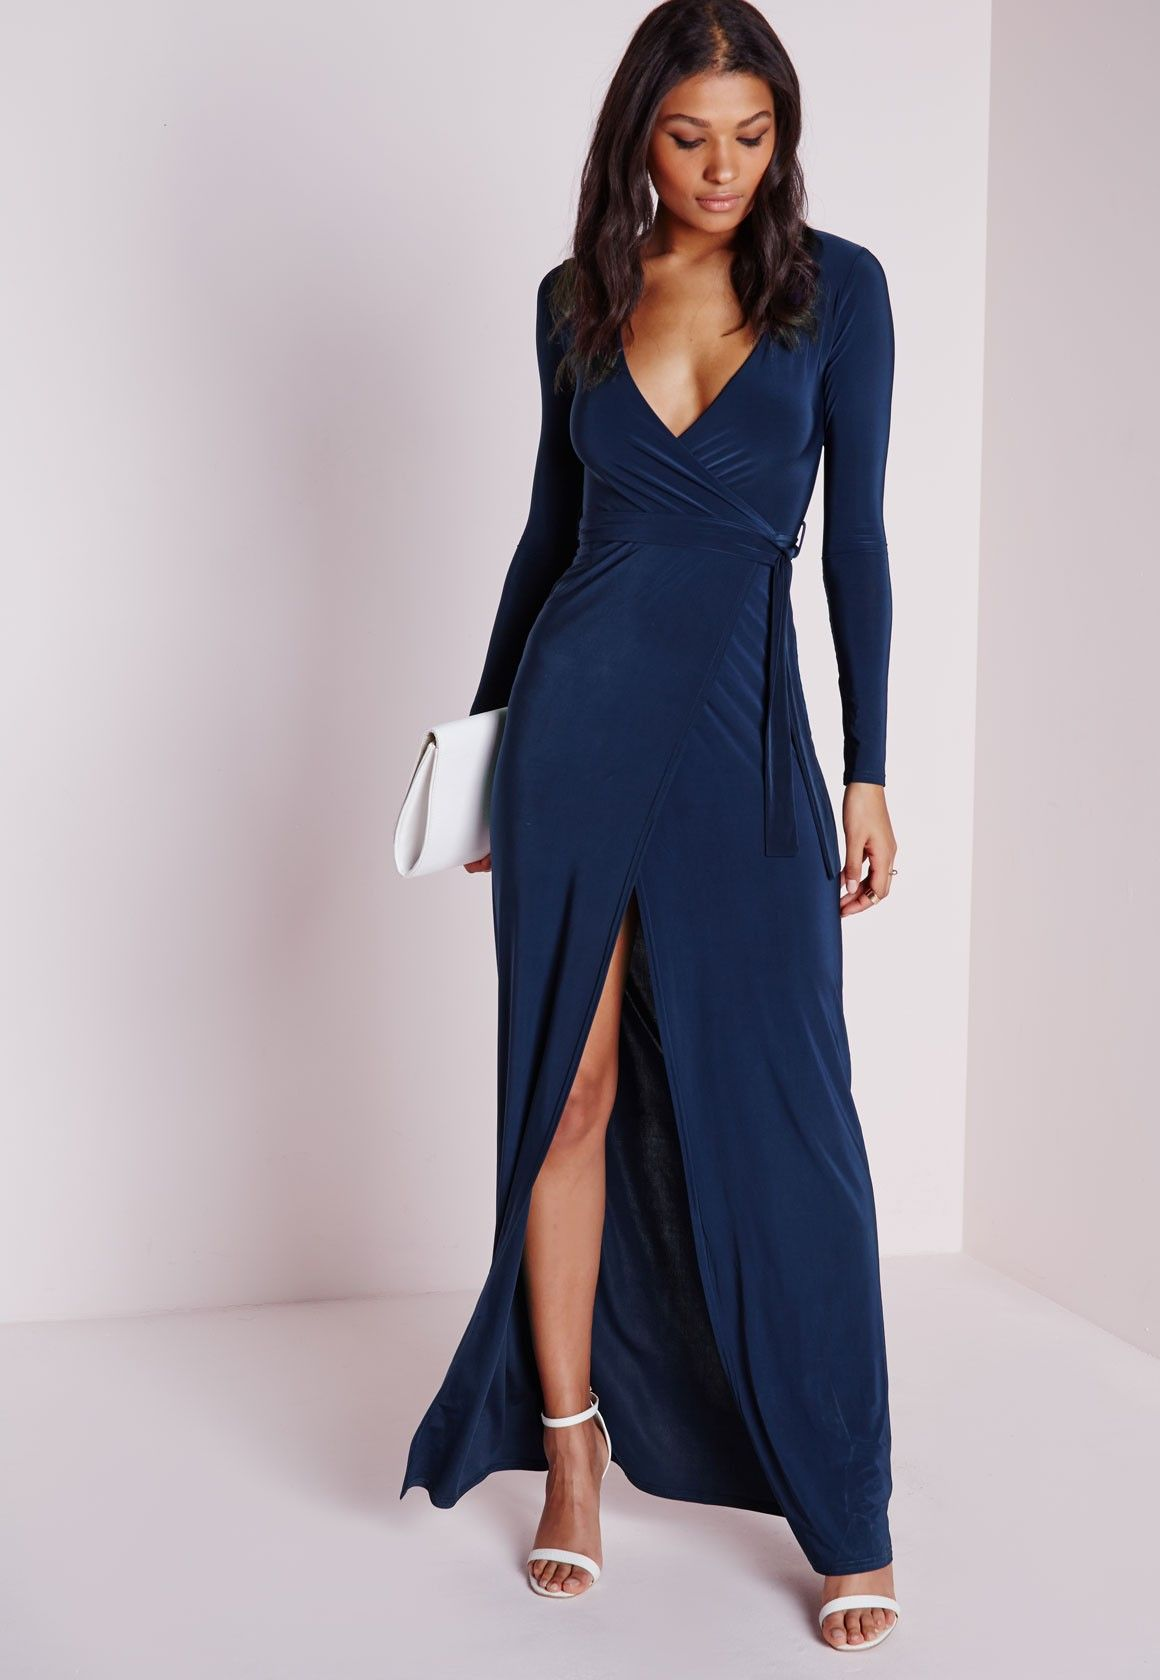 0e291b2cc6 Look seriously chic in this luscious navy maxi dress. With V neckline, long  sleeves and wrap over feature to the skirt this tie belted dress oozes  elegance.